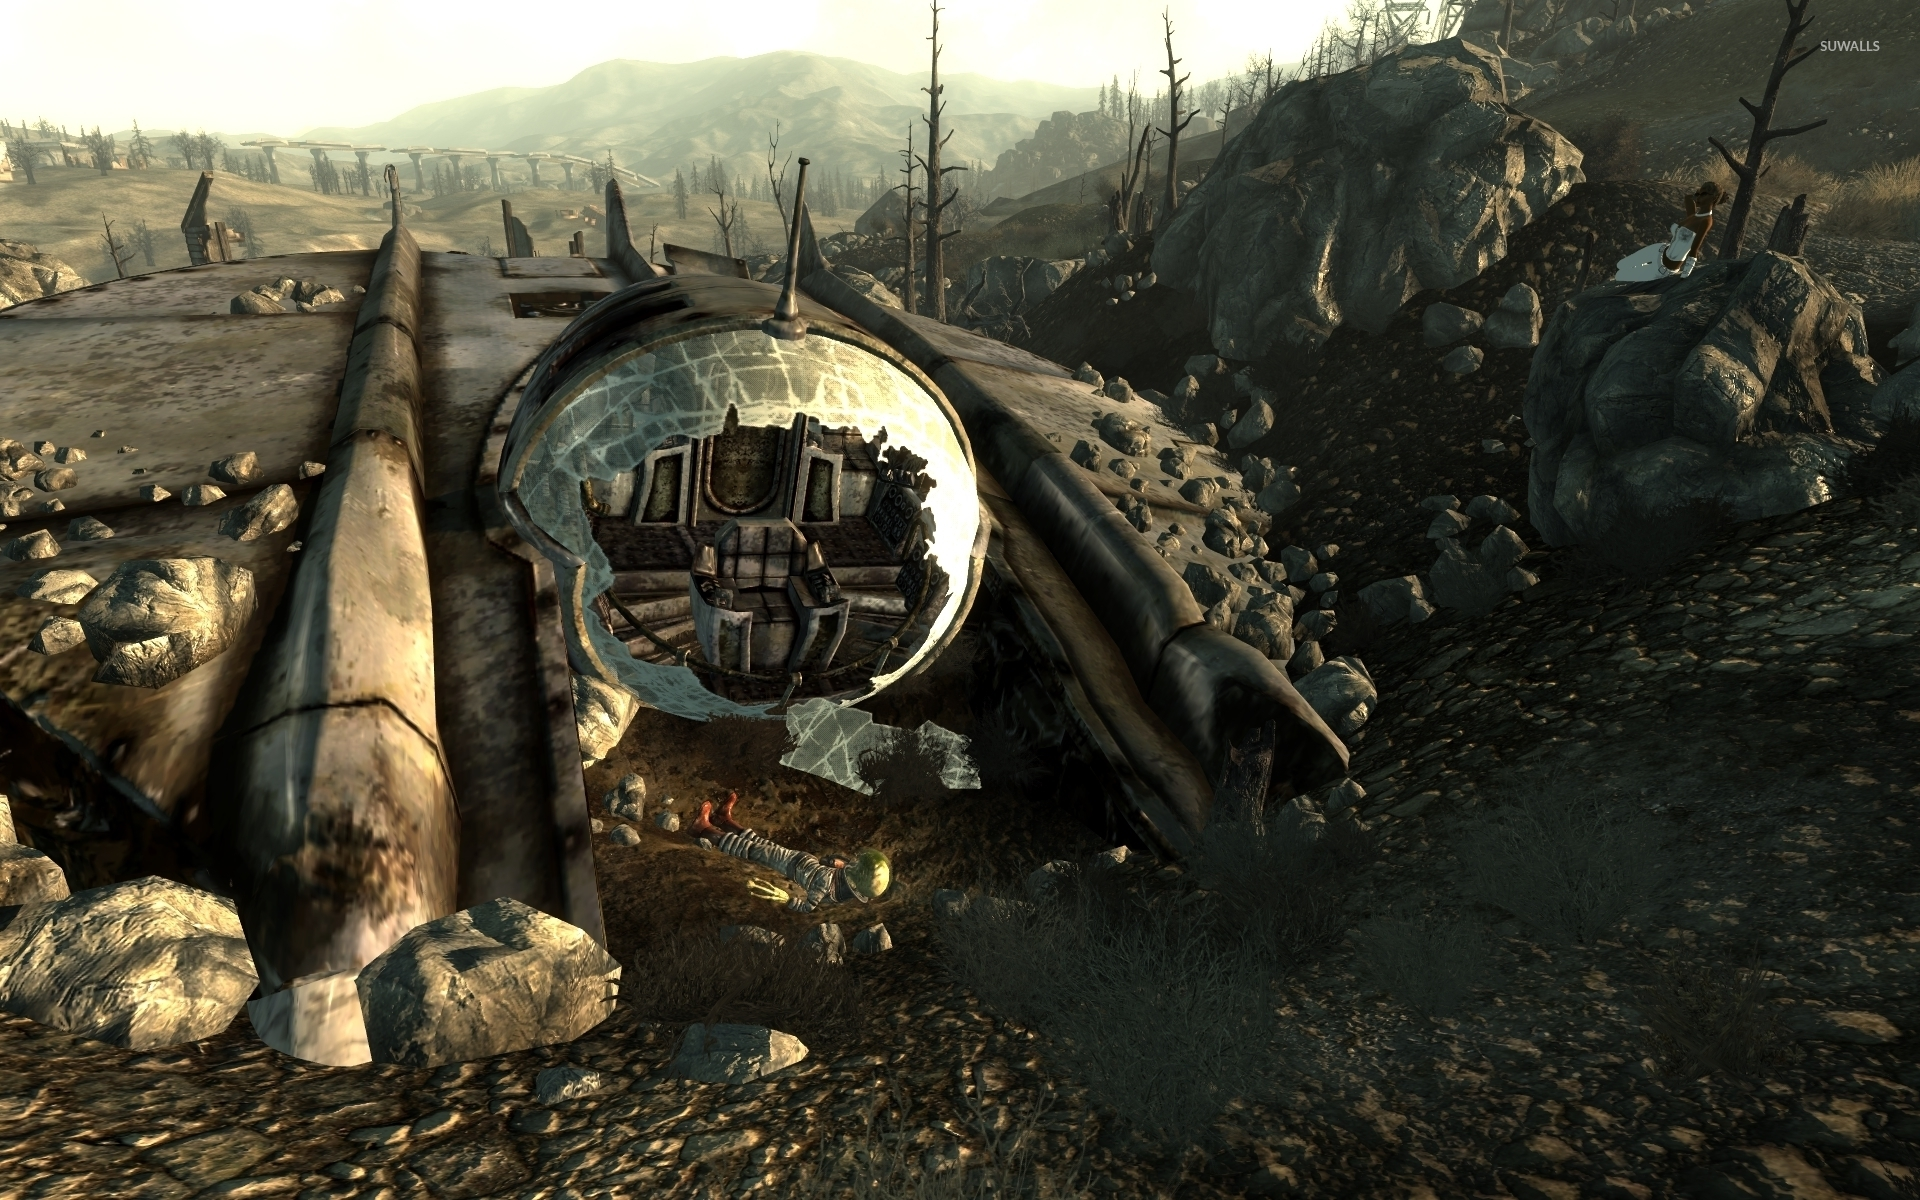 epic fallout backgrounds Google Search Backgrounds Pinterest